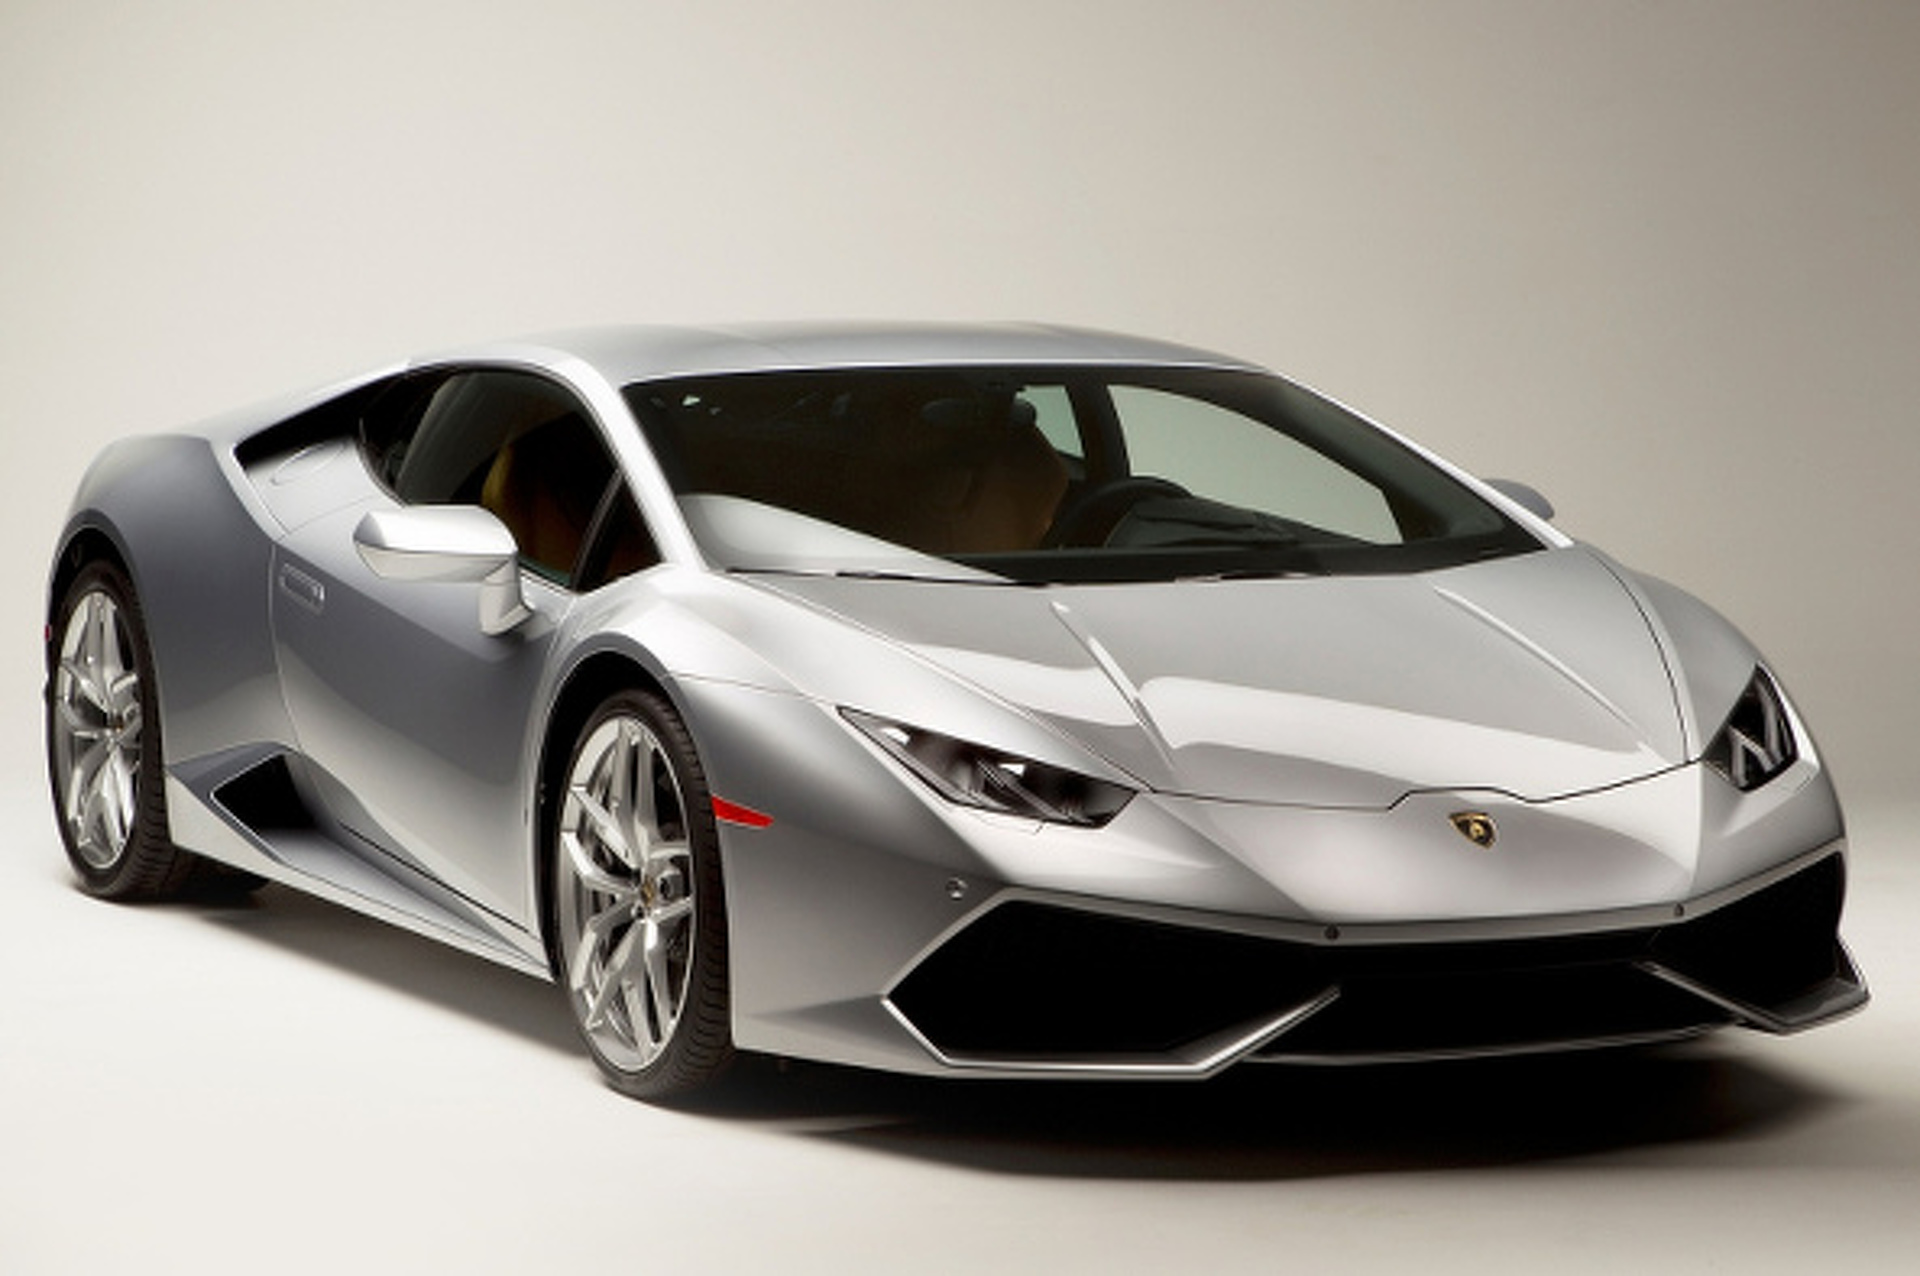 How much a lamborghini cost